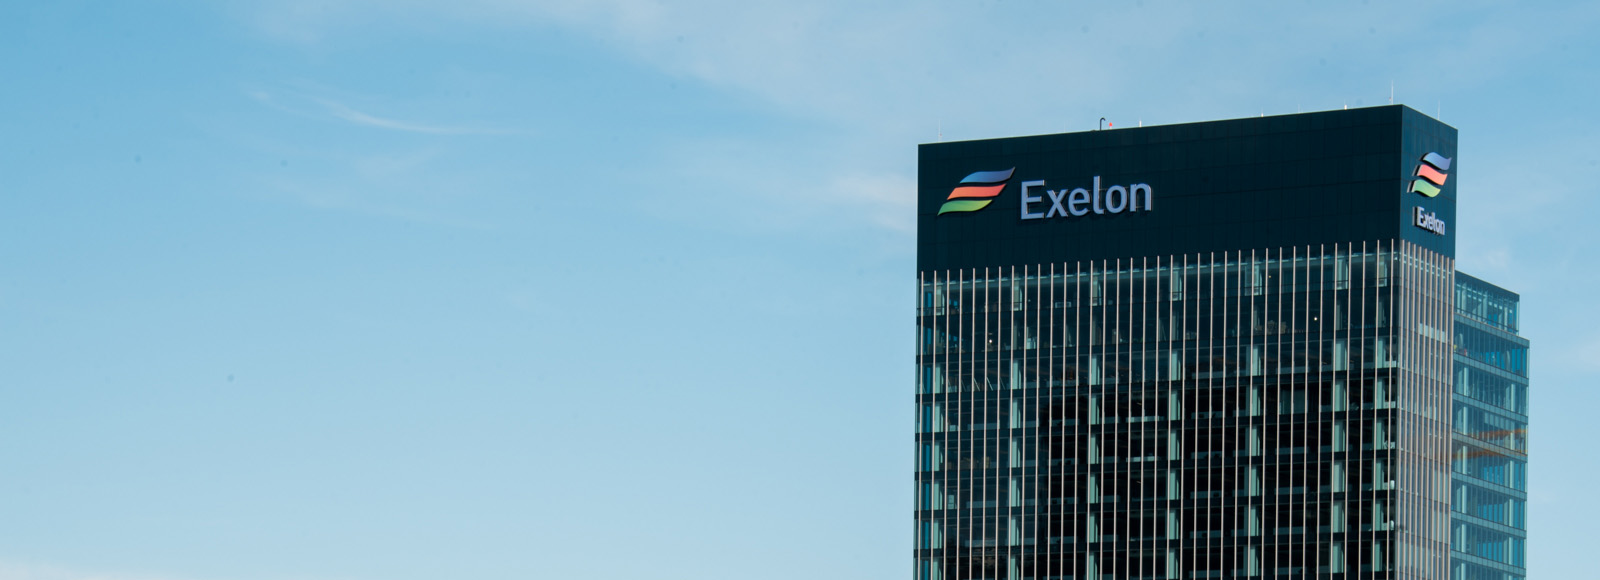 Exelon login